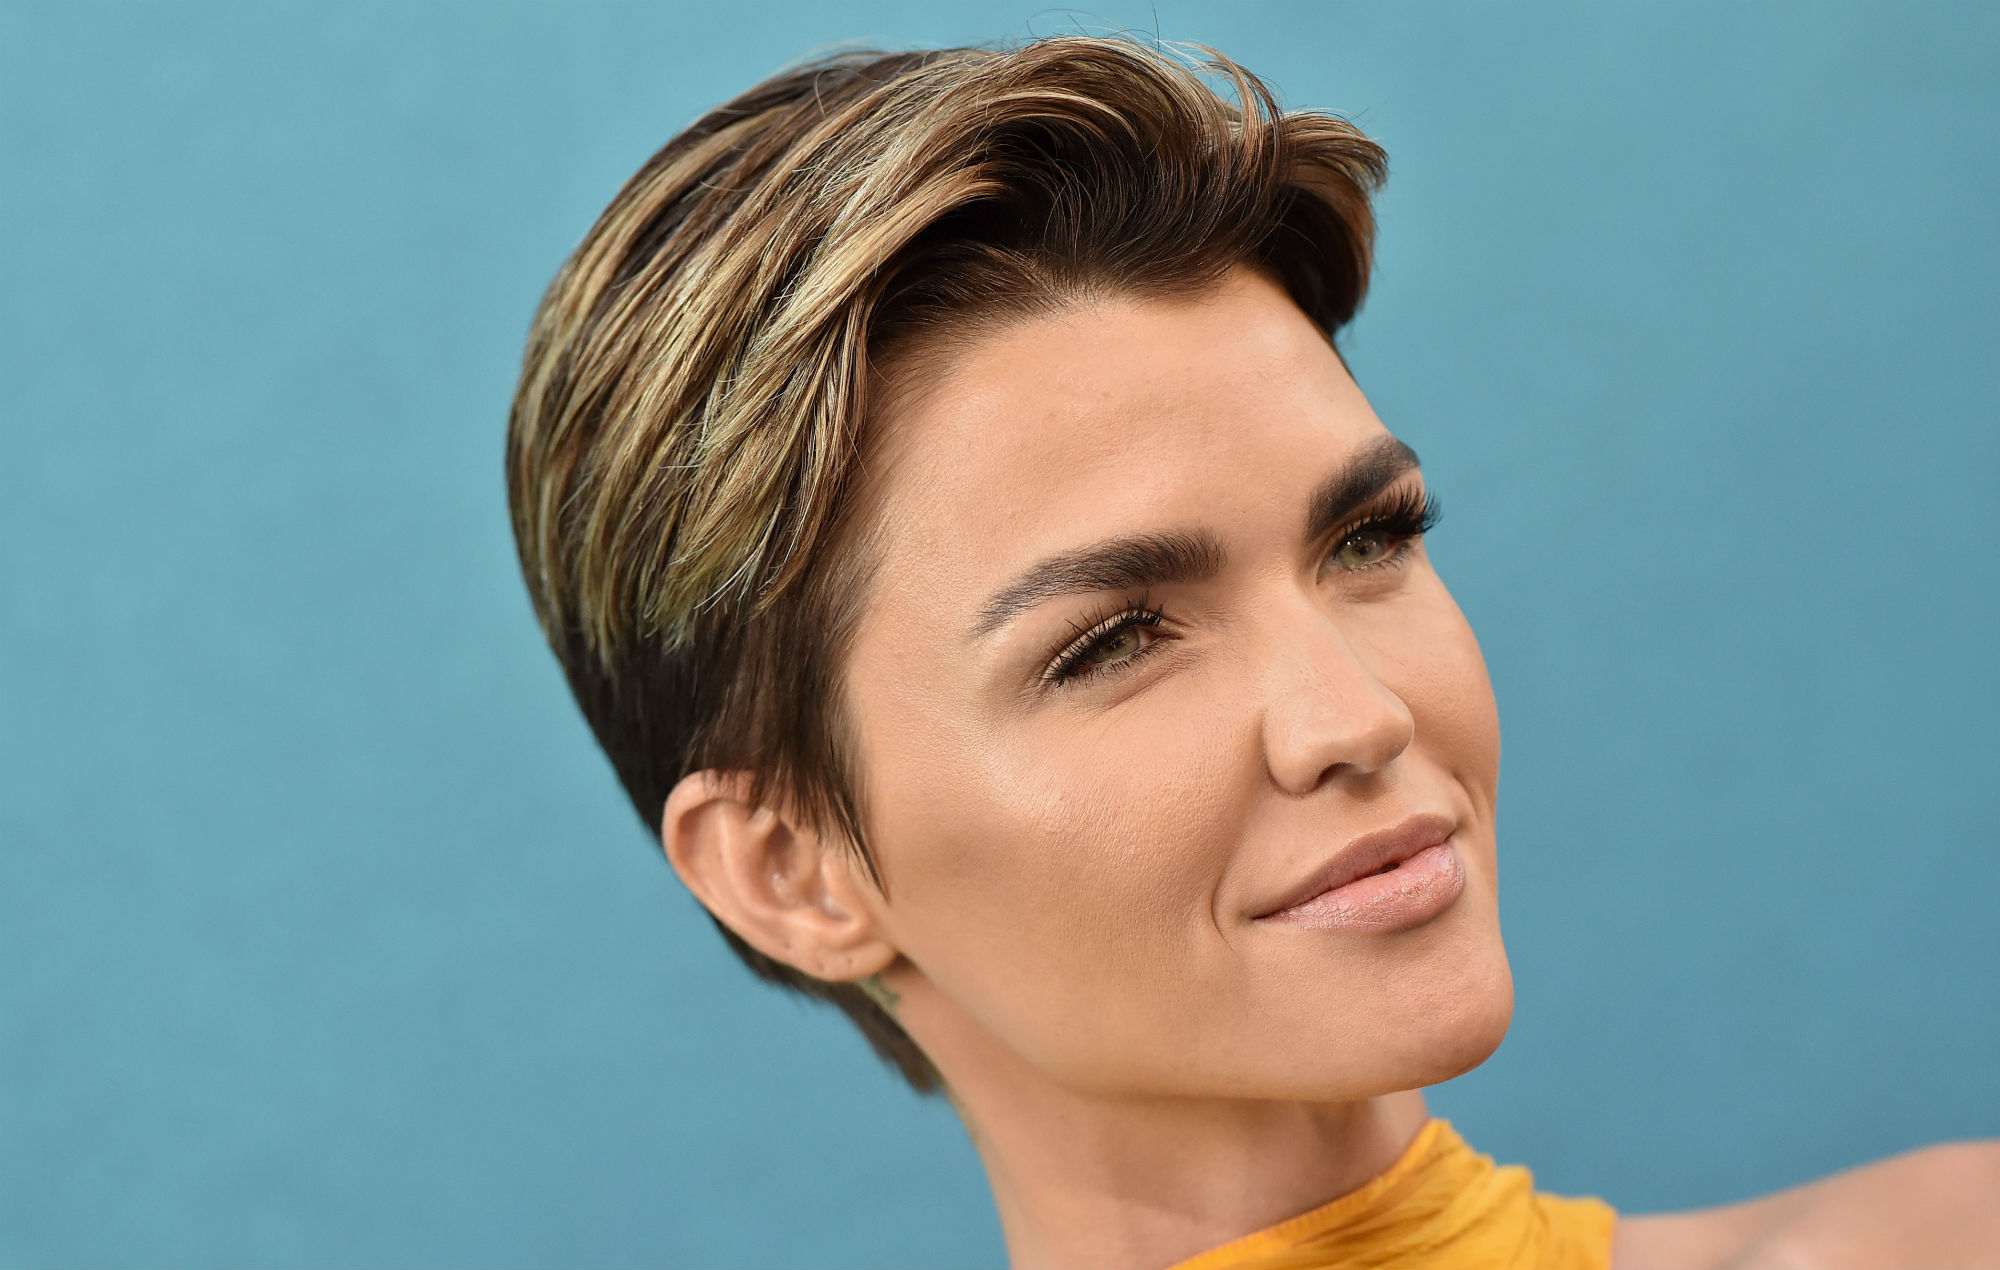 Ruby Rose Shares First On Set Image Of Her In Character As